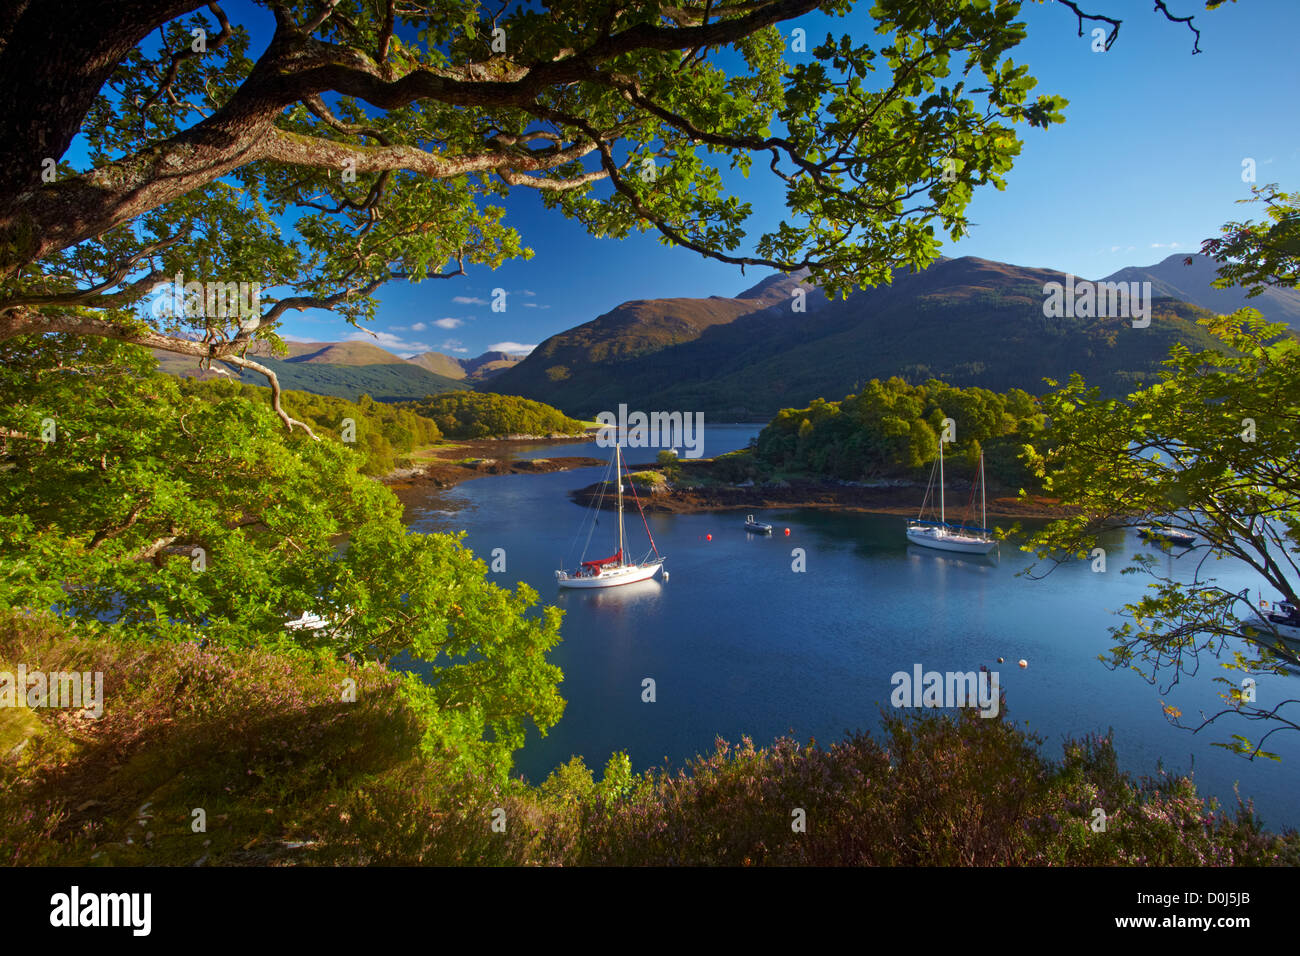 Yachts anchored in the calm waters of Loch Leven at Bishop's Bay. - Stock Image